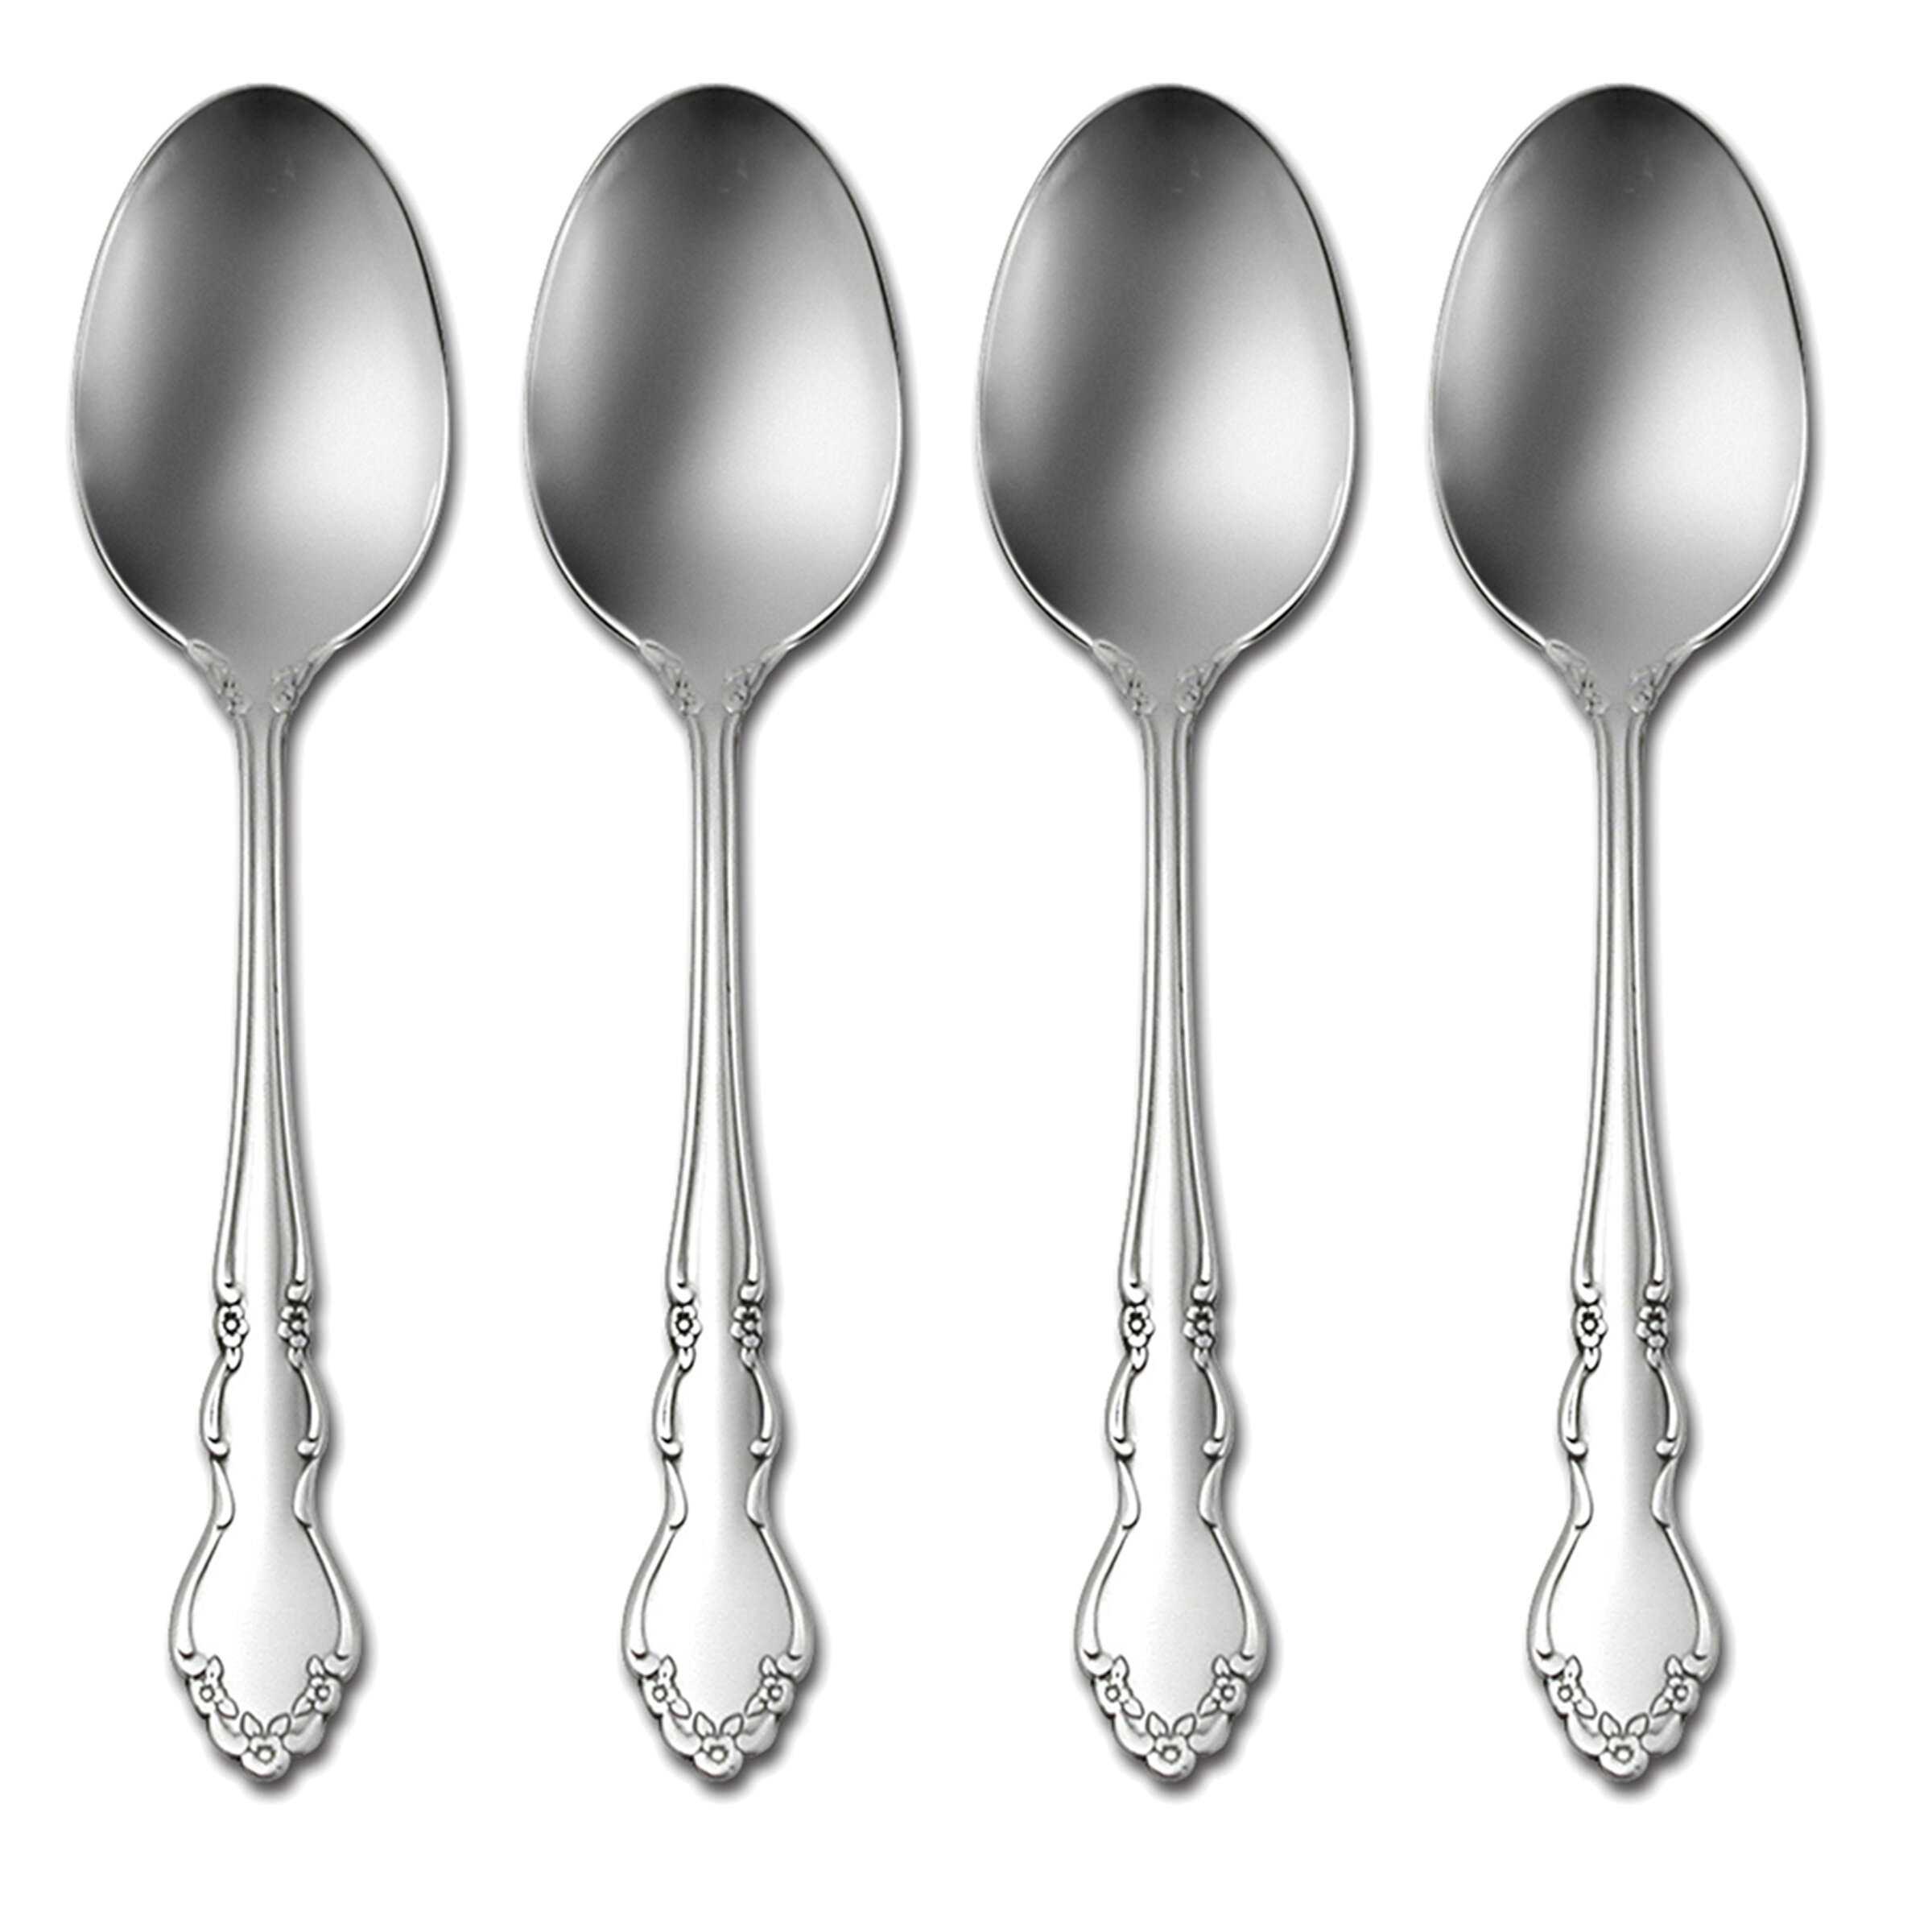 Set of 4 Stainless Steel Louisiana Place Spoon